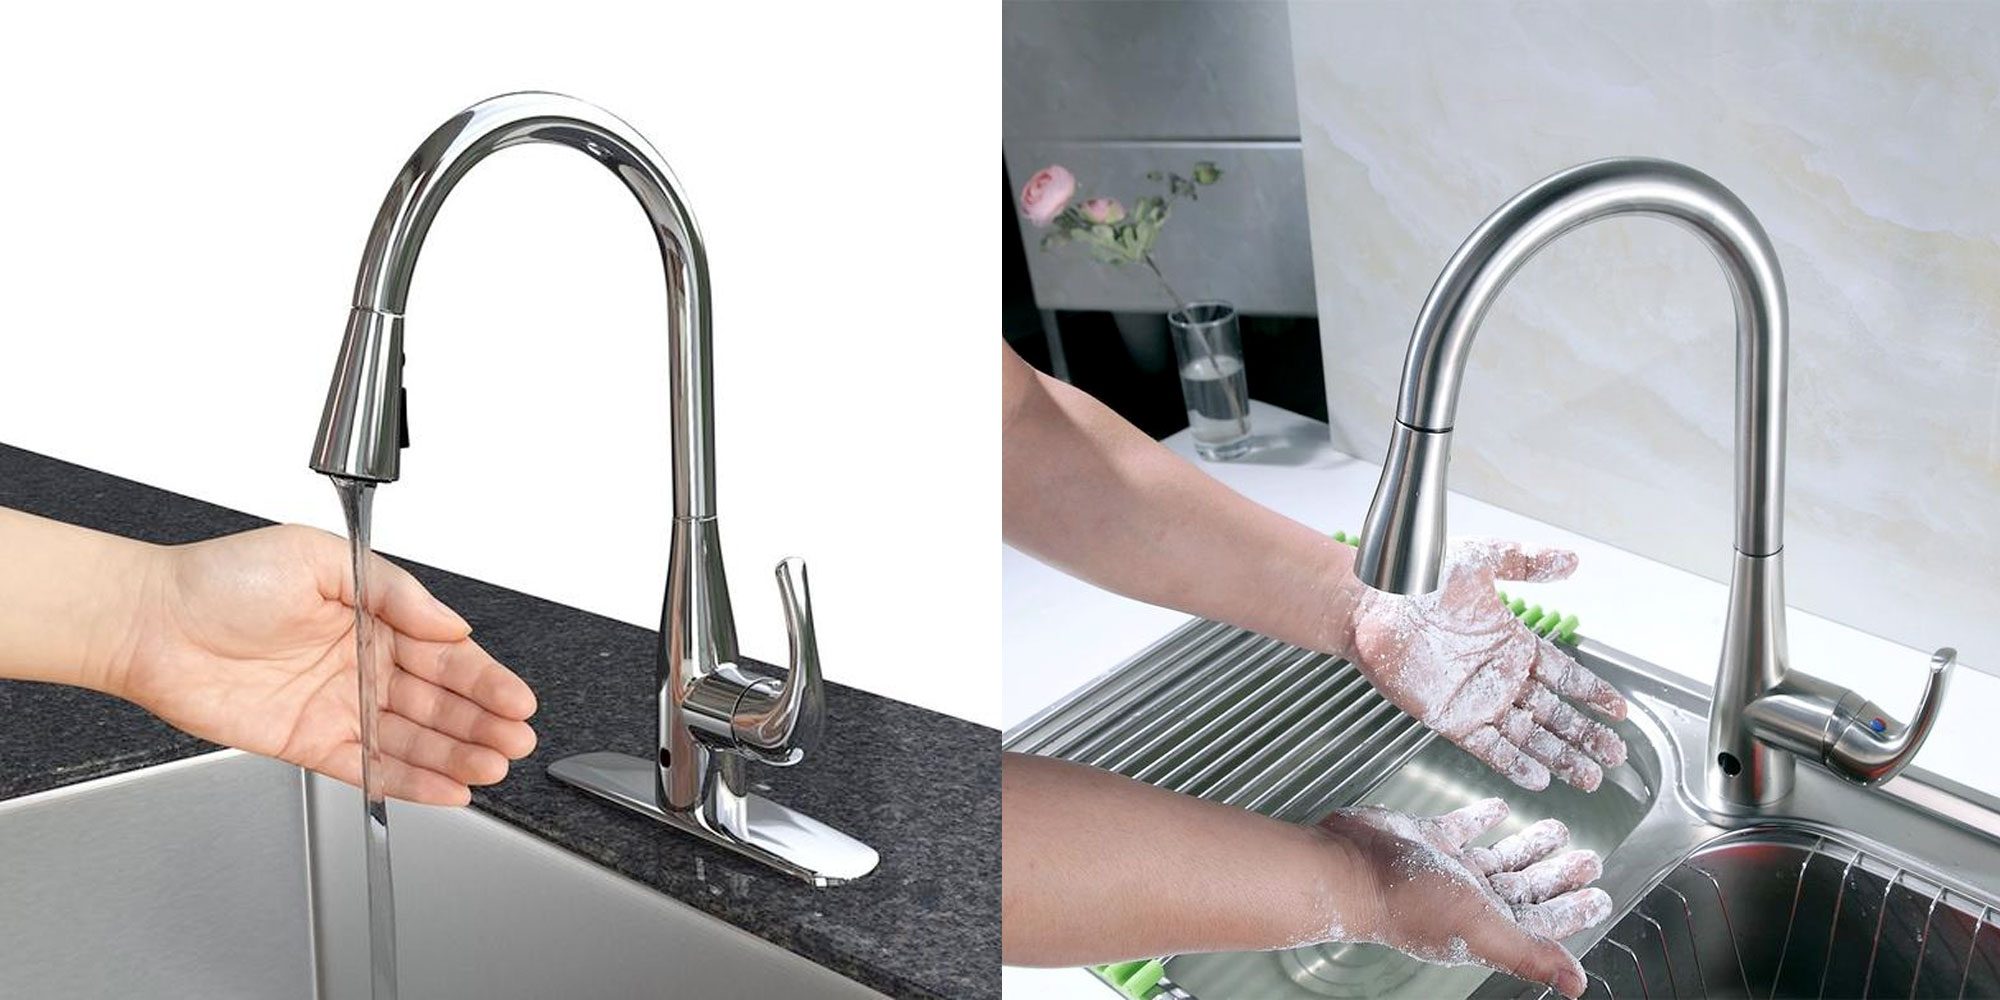 Bio Bidet S Highly Rated Kitchen Faucet Turns On W Just A